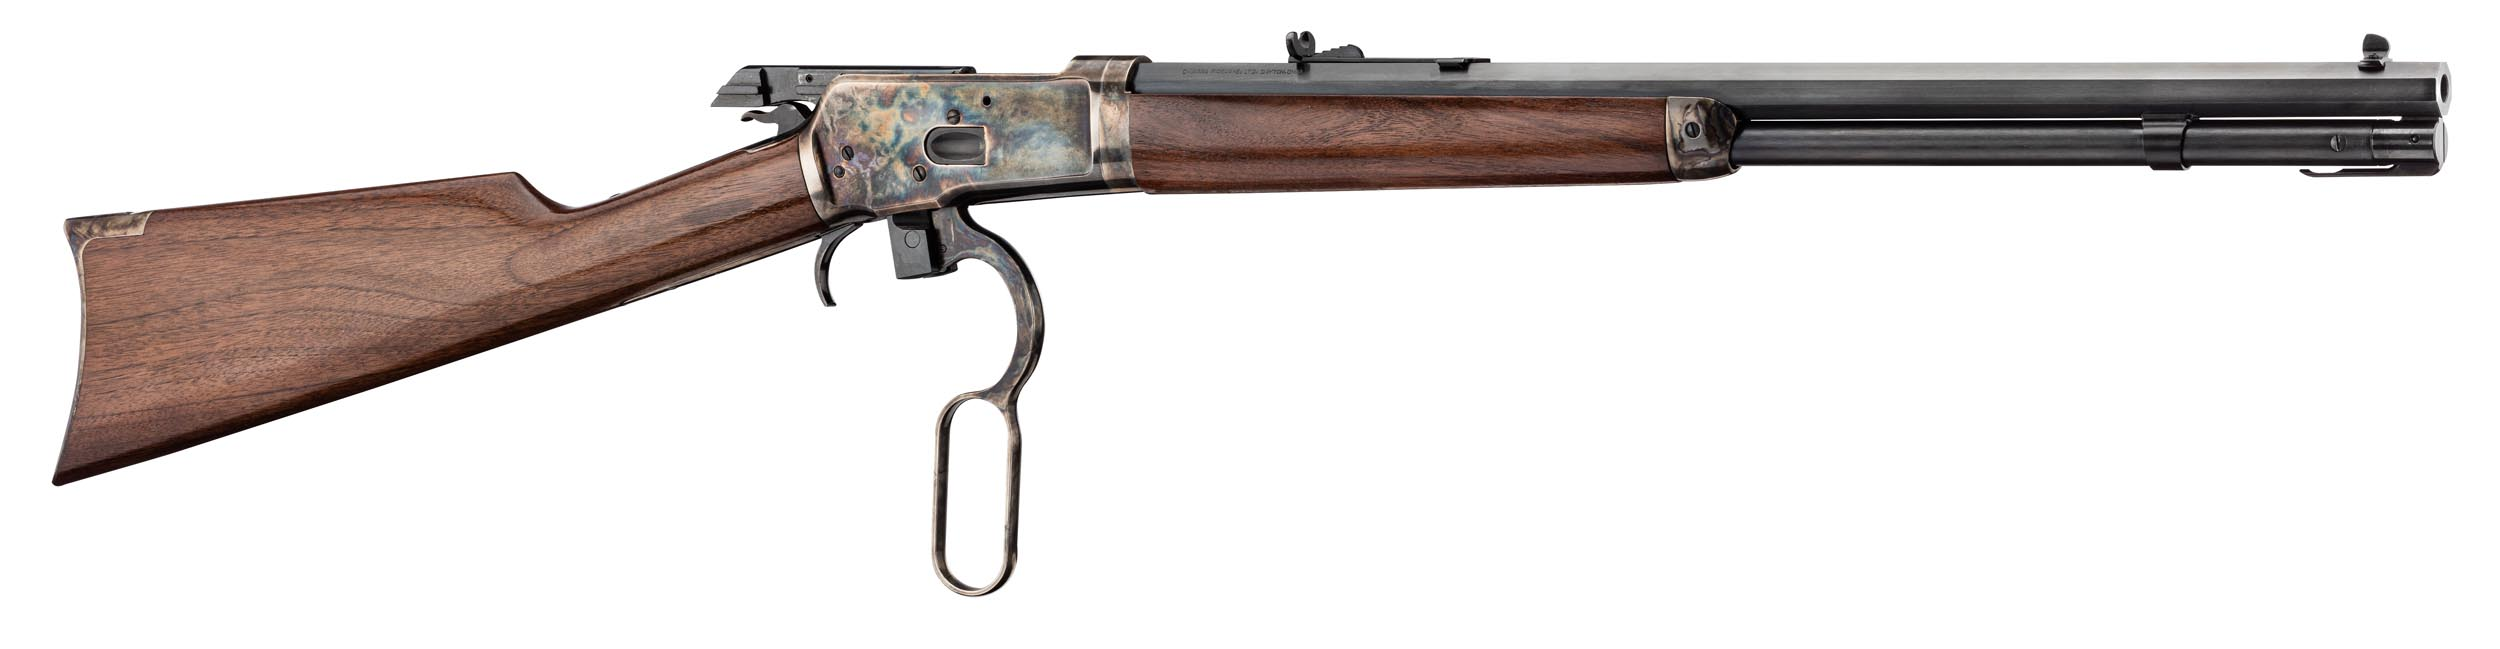 WE172-2 Chiappa 1892 Lever Action take down - Canon Octogonal - WE171